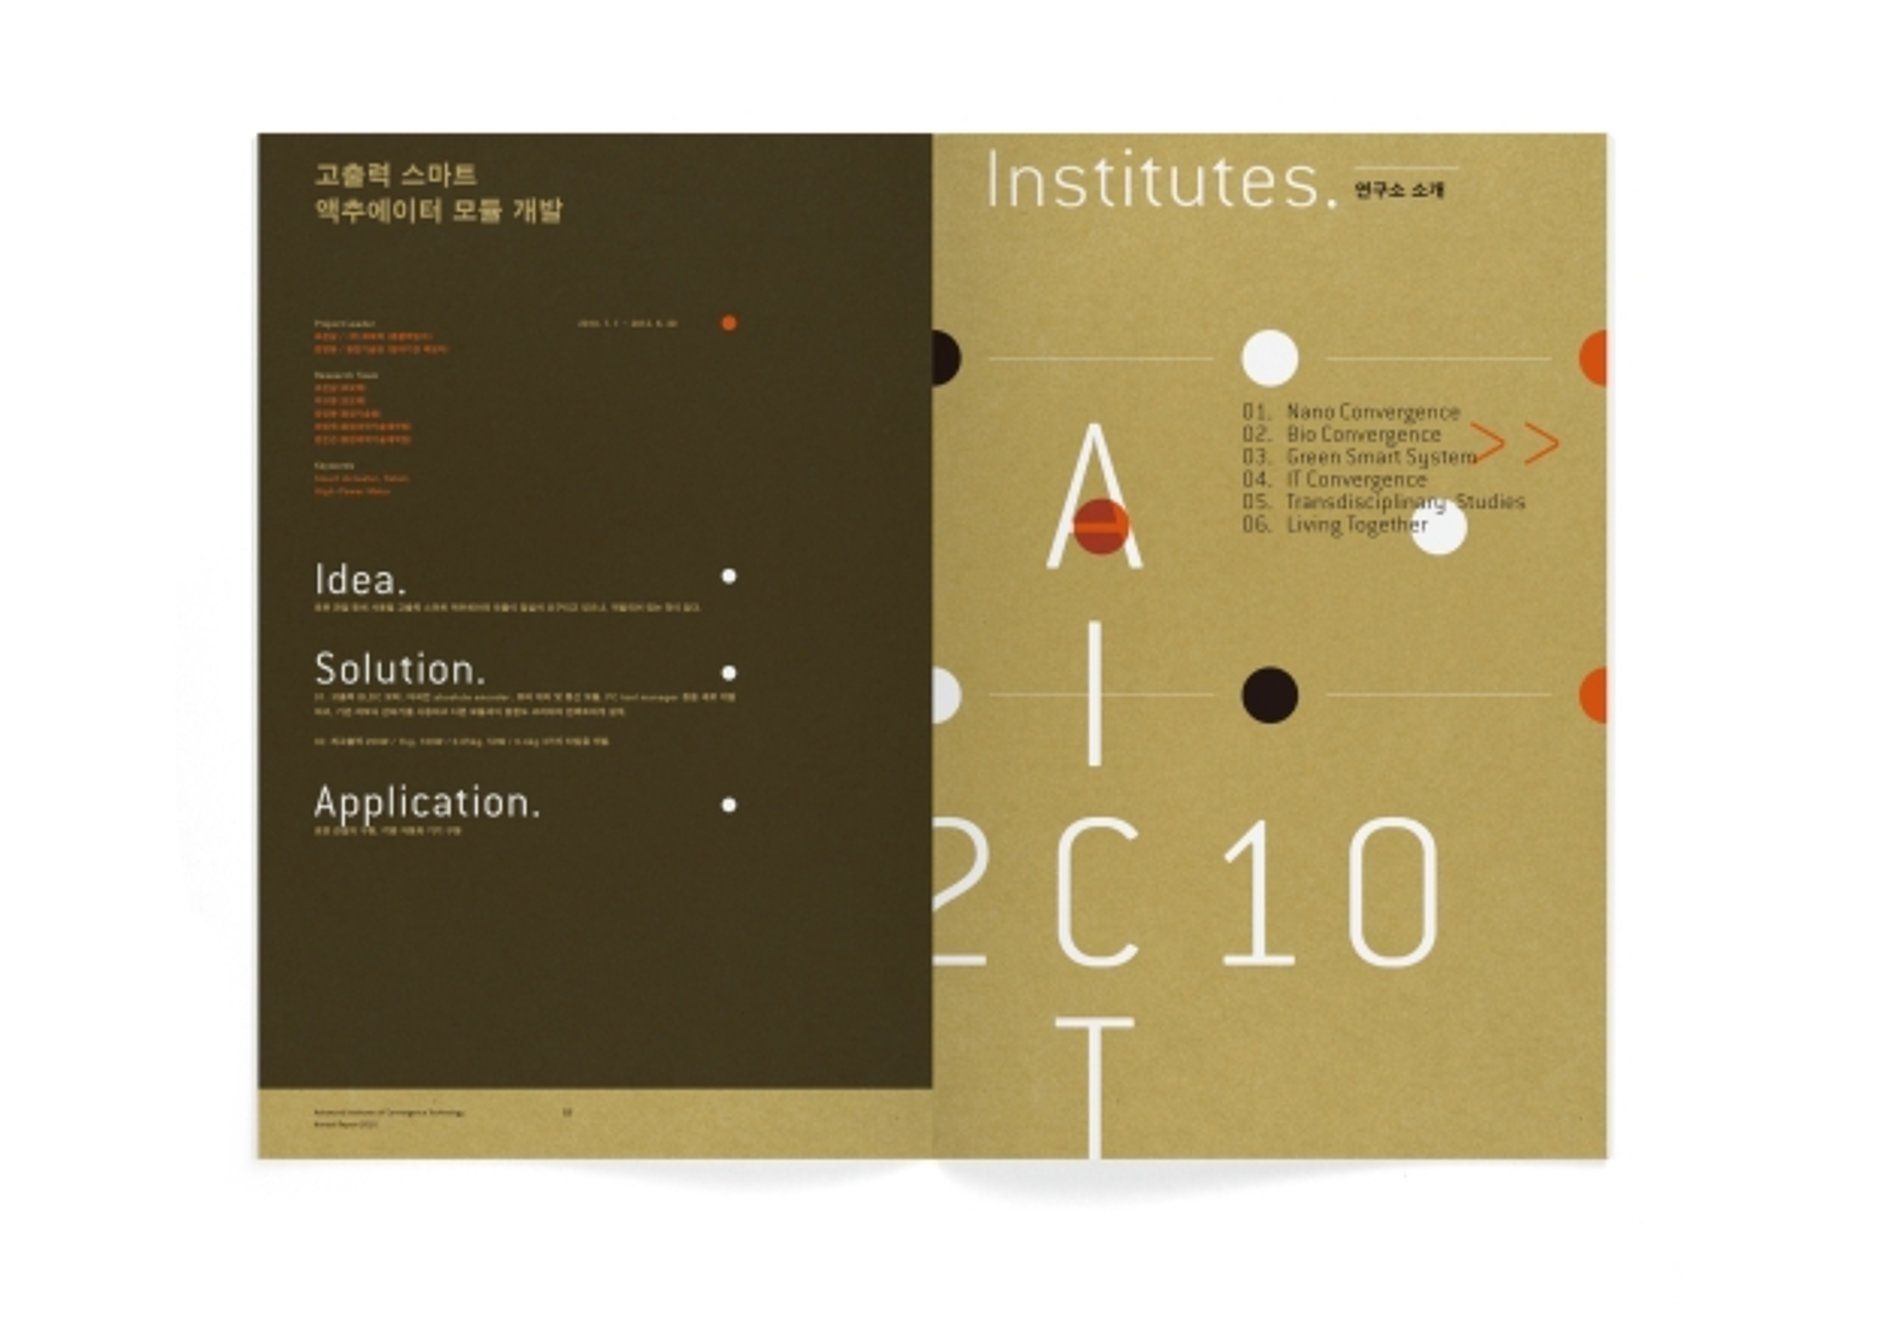 AICT Annual Report 2010 | Red Dot Design Award